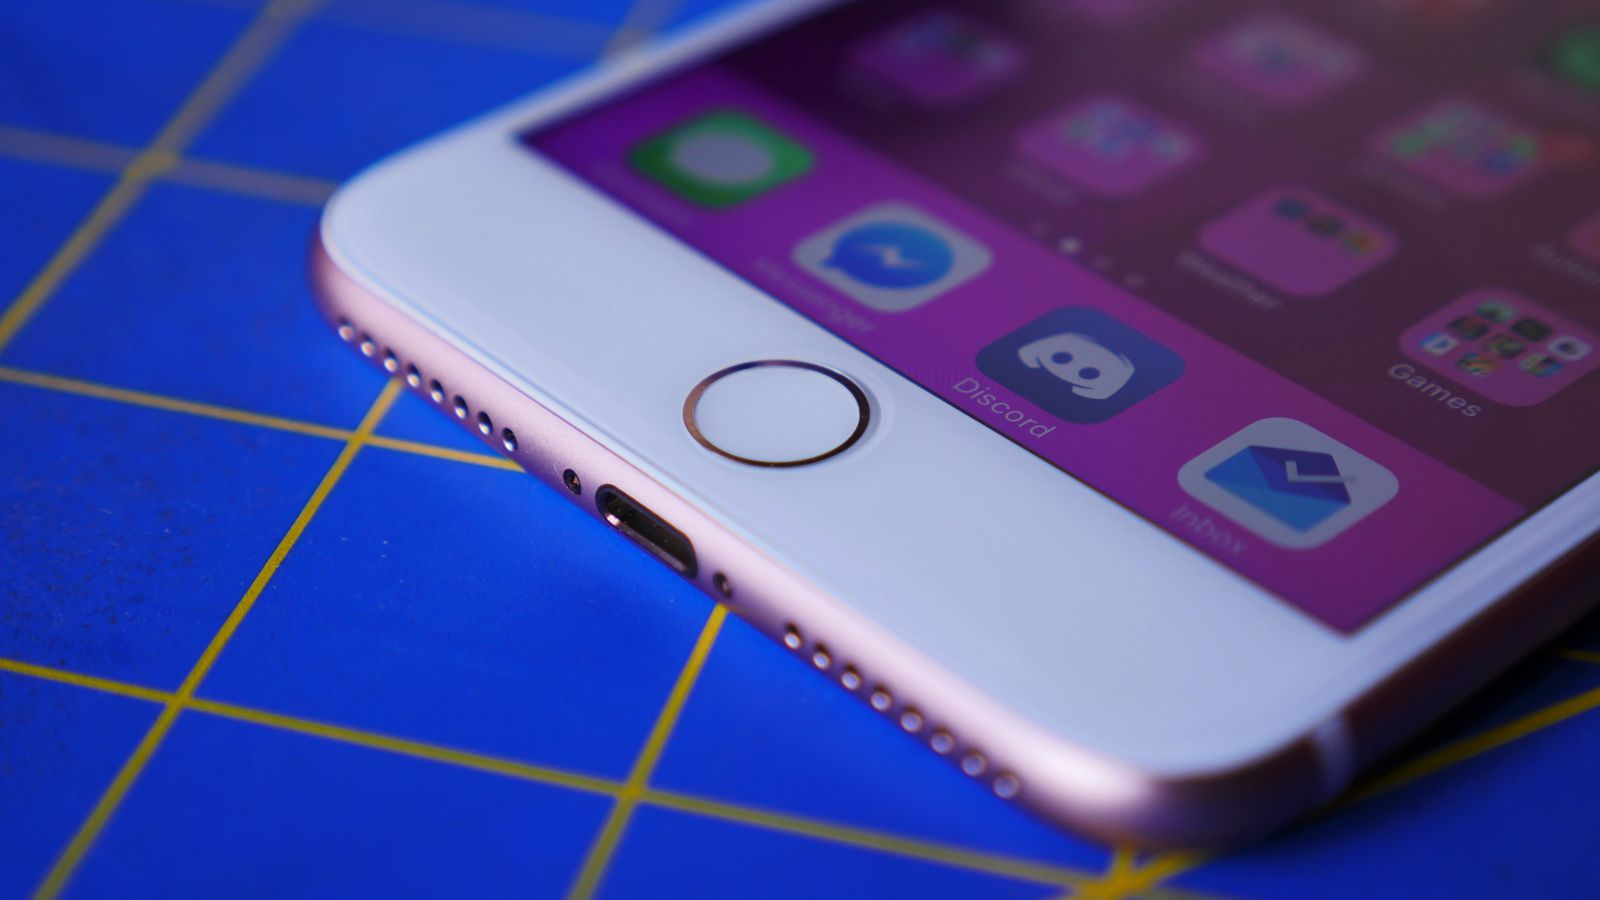 iphone-7-home-button-tips.jpg